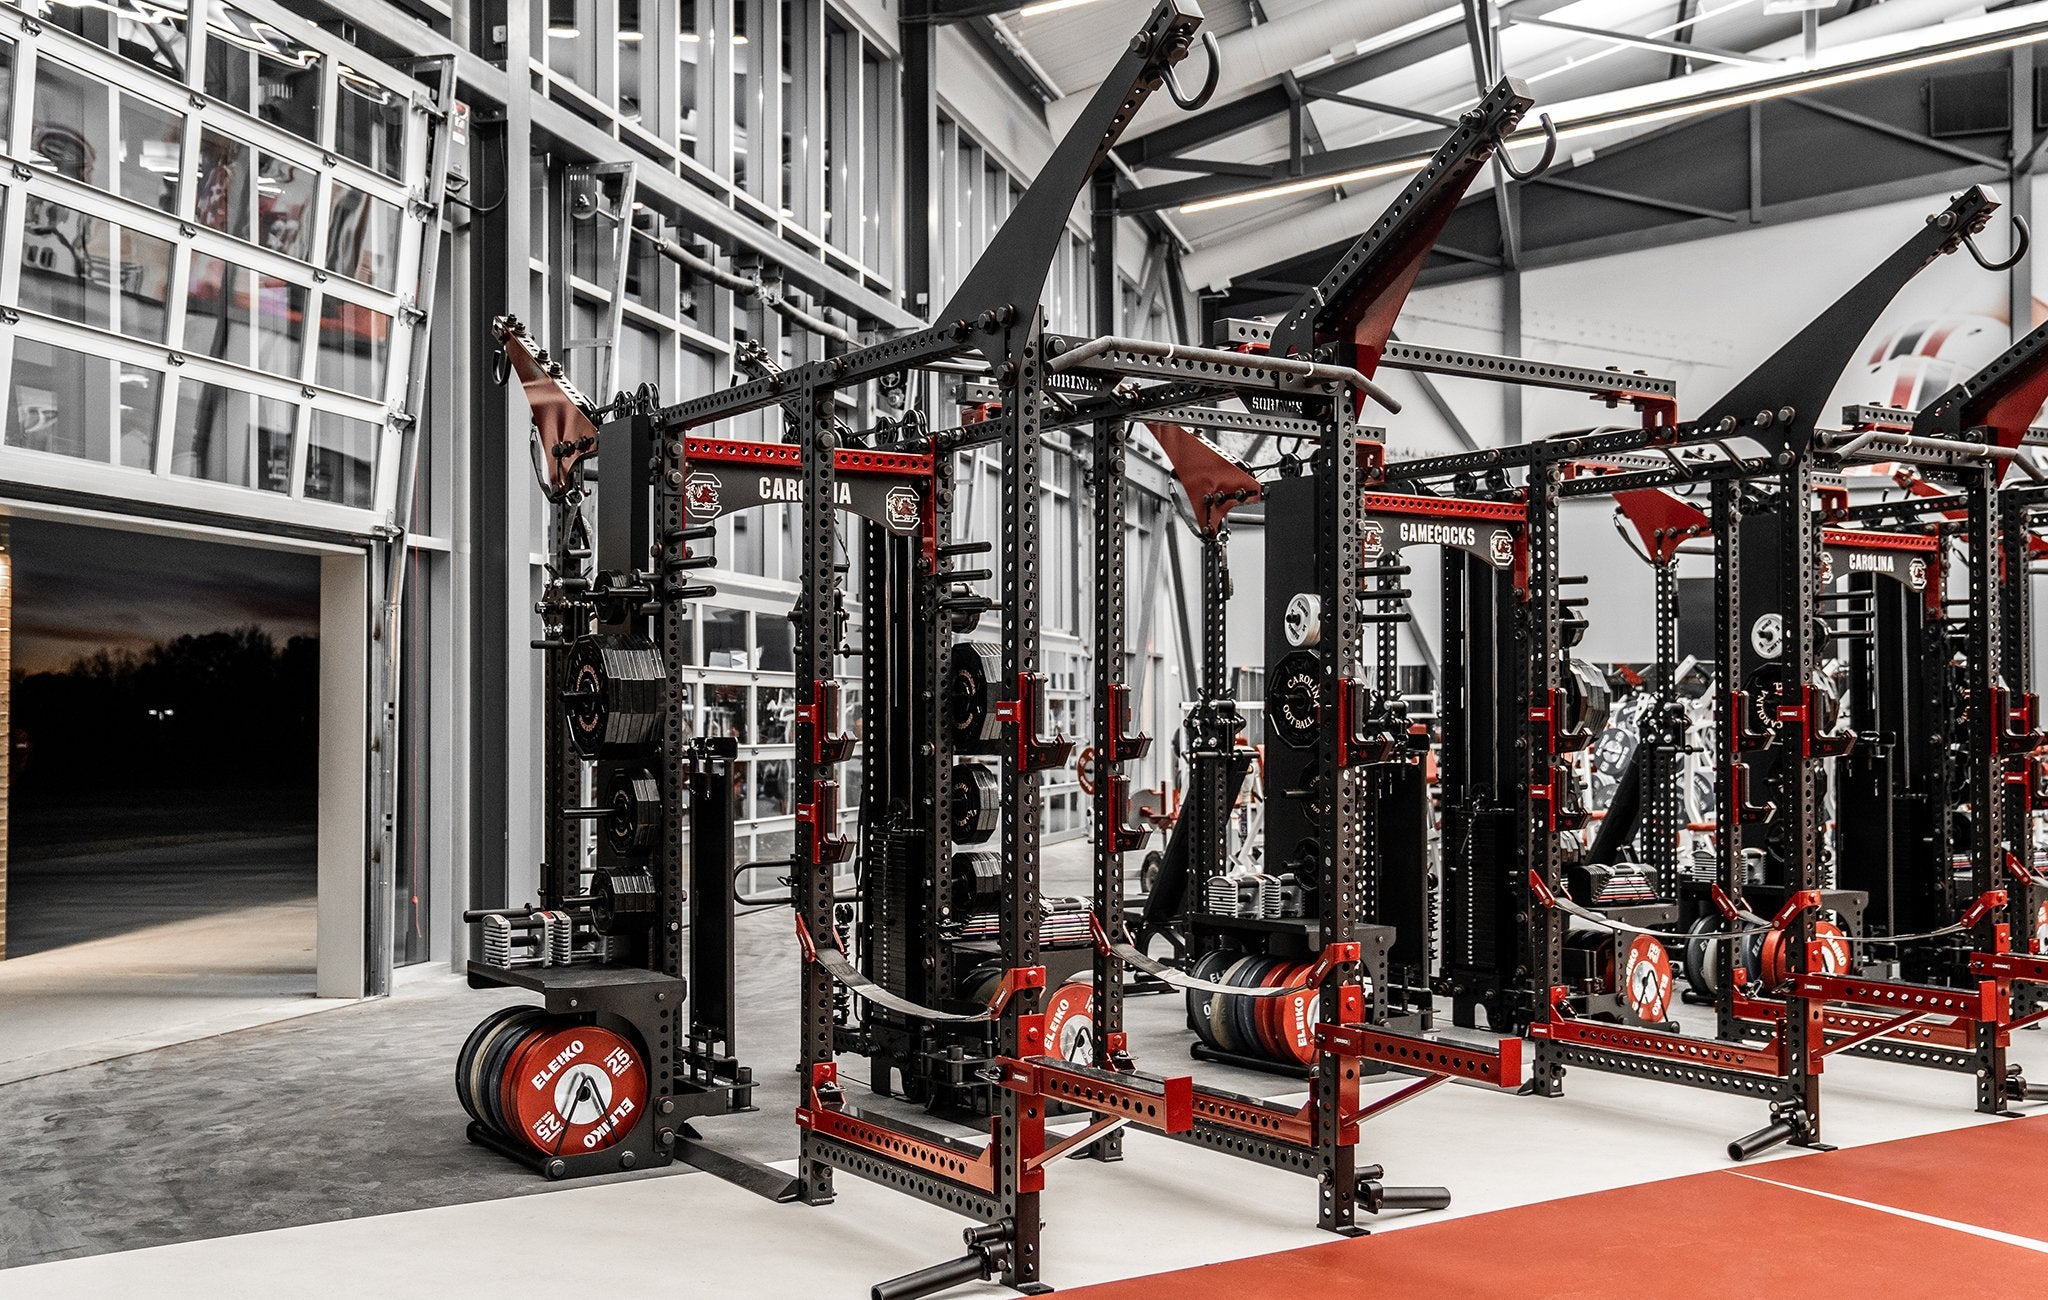 USC Gamecocks football weight room